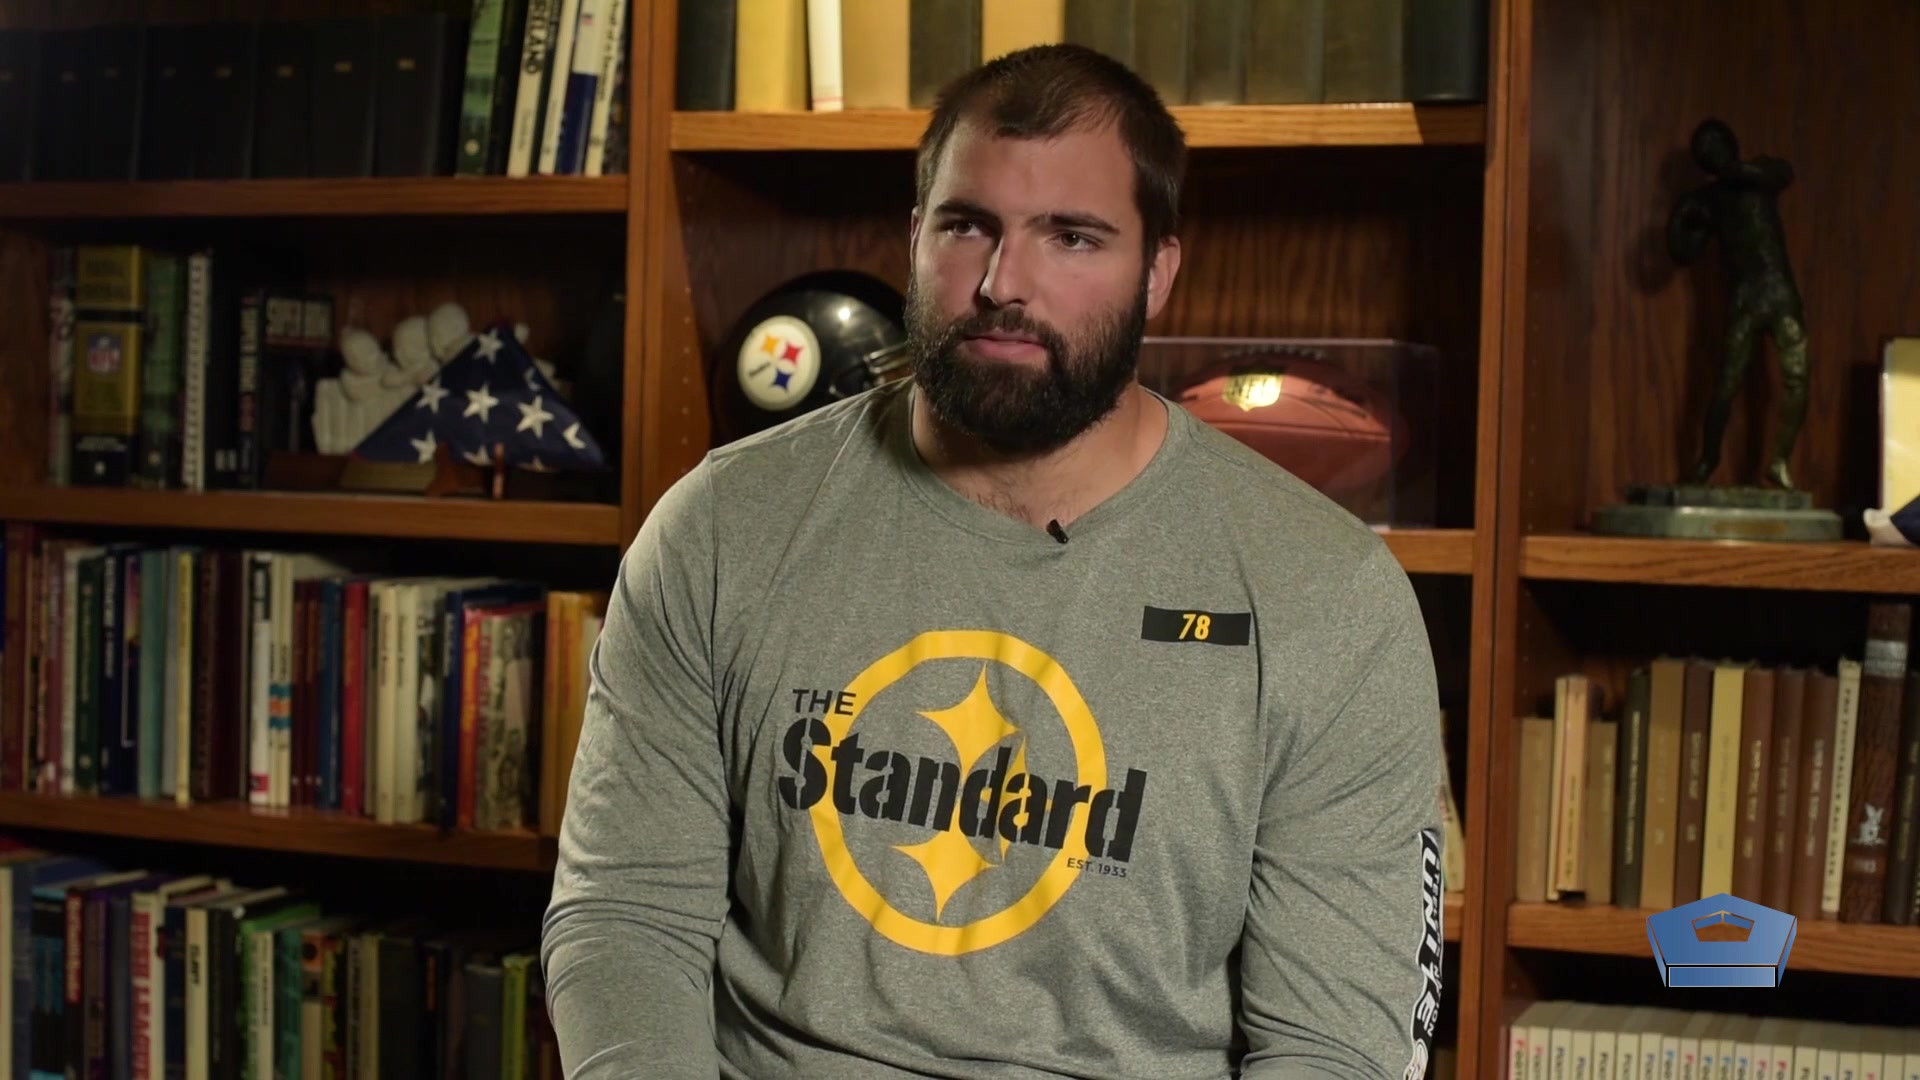 Alejandro Villanueva went from defending our country in the trenches of Afghanistan to defending the blind side of NFL quarterbacks in the trenches of an offensive line. He says the two worlds are different, yet they share certain traits.